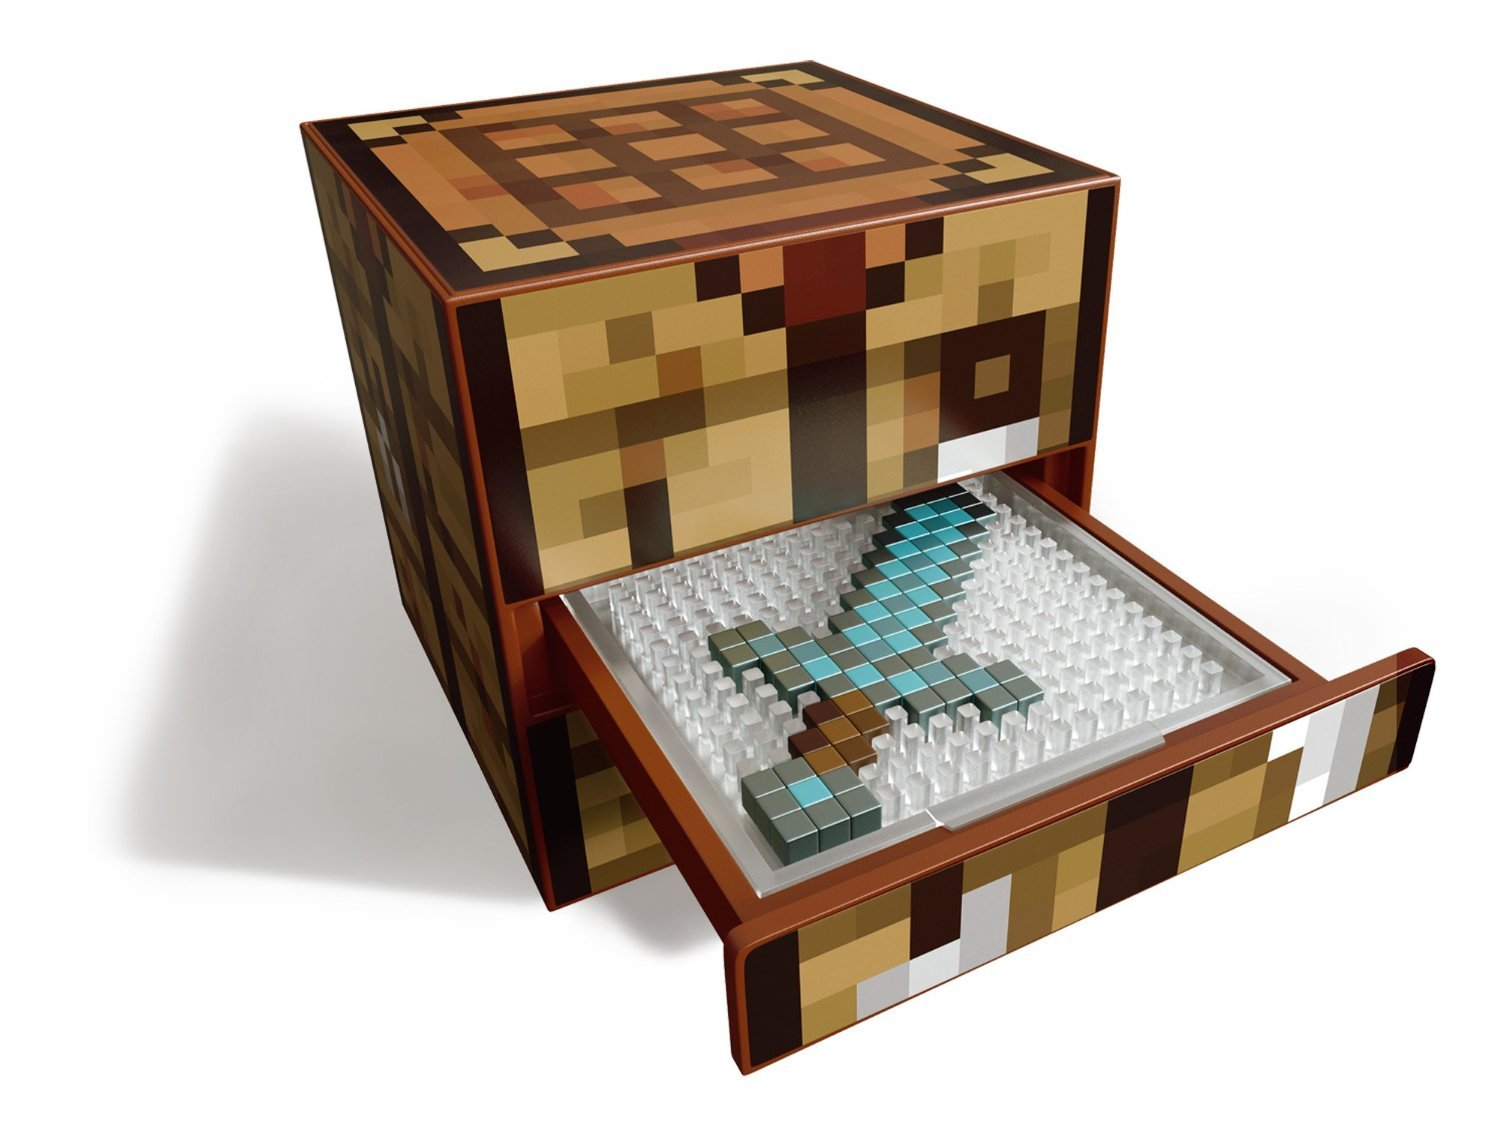 Minecraft crafting table playset toy at mighty ape nz - Crafting table on minecraft ...